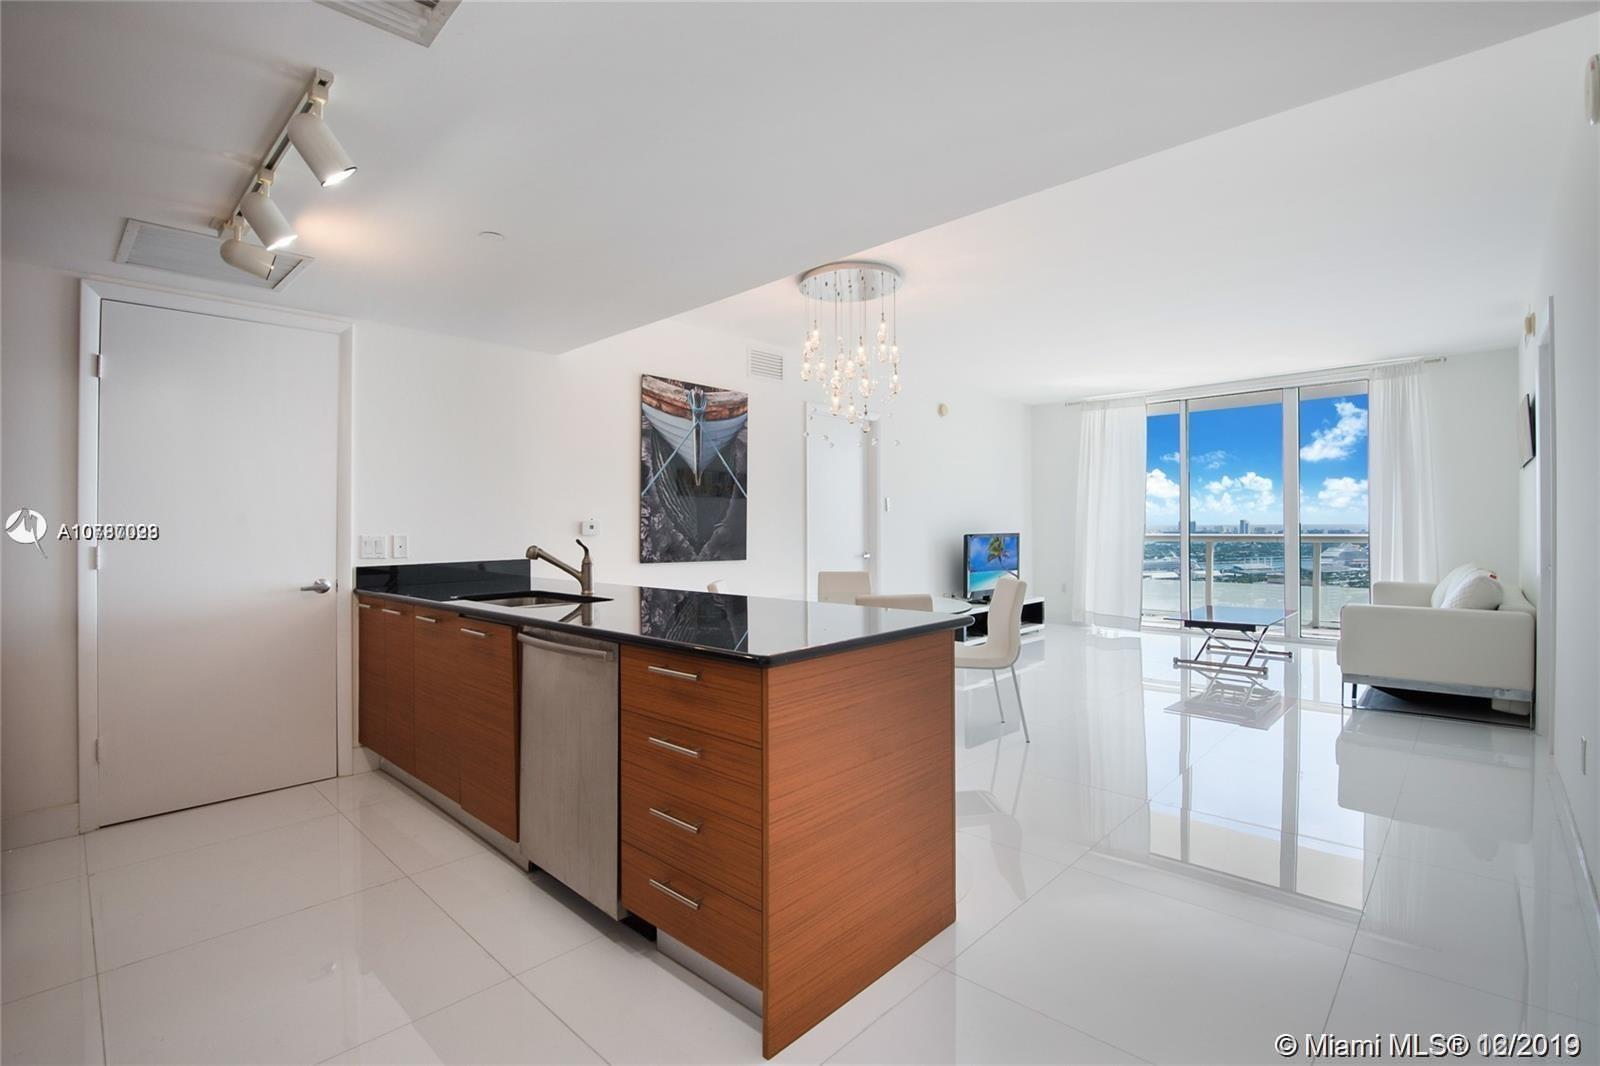 The best views of Miami! Direct ocean and bay views. 2 beds / 2 baths plus Den fully renovated unit. Building amenities include full Gym, Spa, Sauna, Party Room, and relaxing pool area with Olympic sized Heated Pool